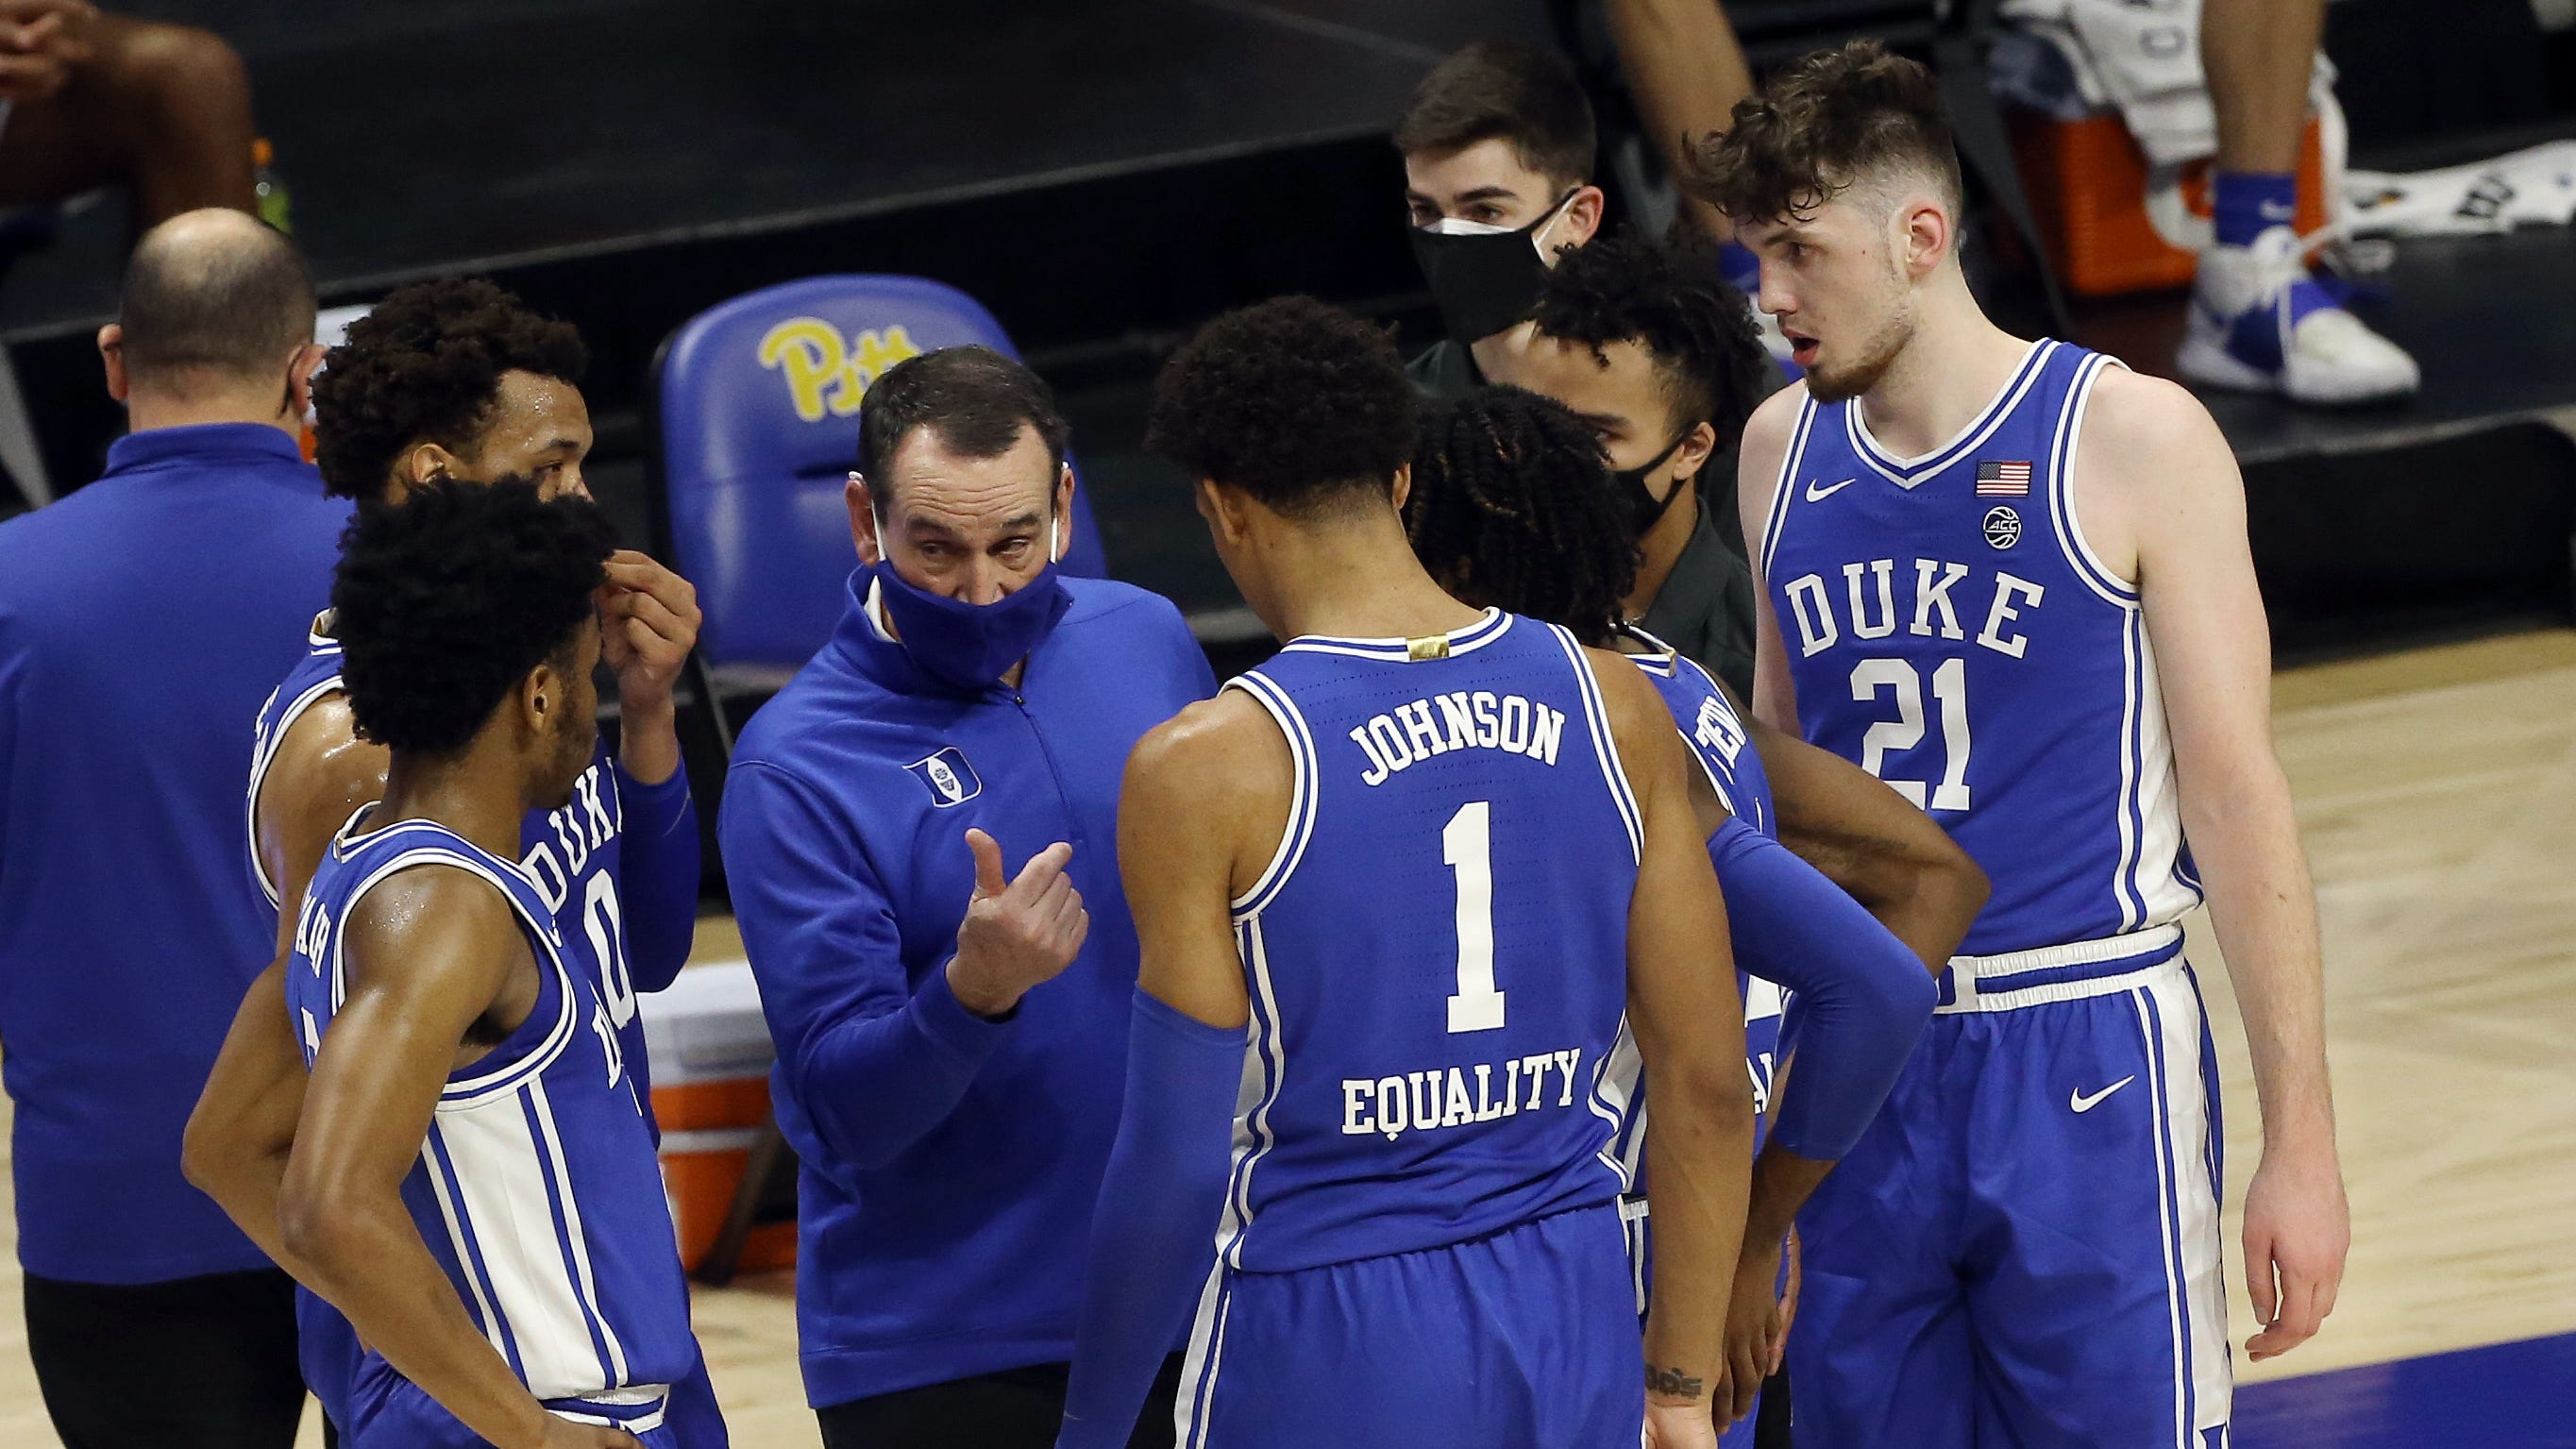 Push the panic button? Duke's Coach K says 'I don't have one'